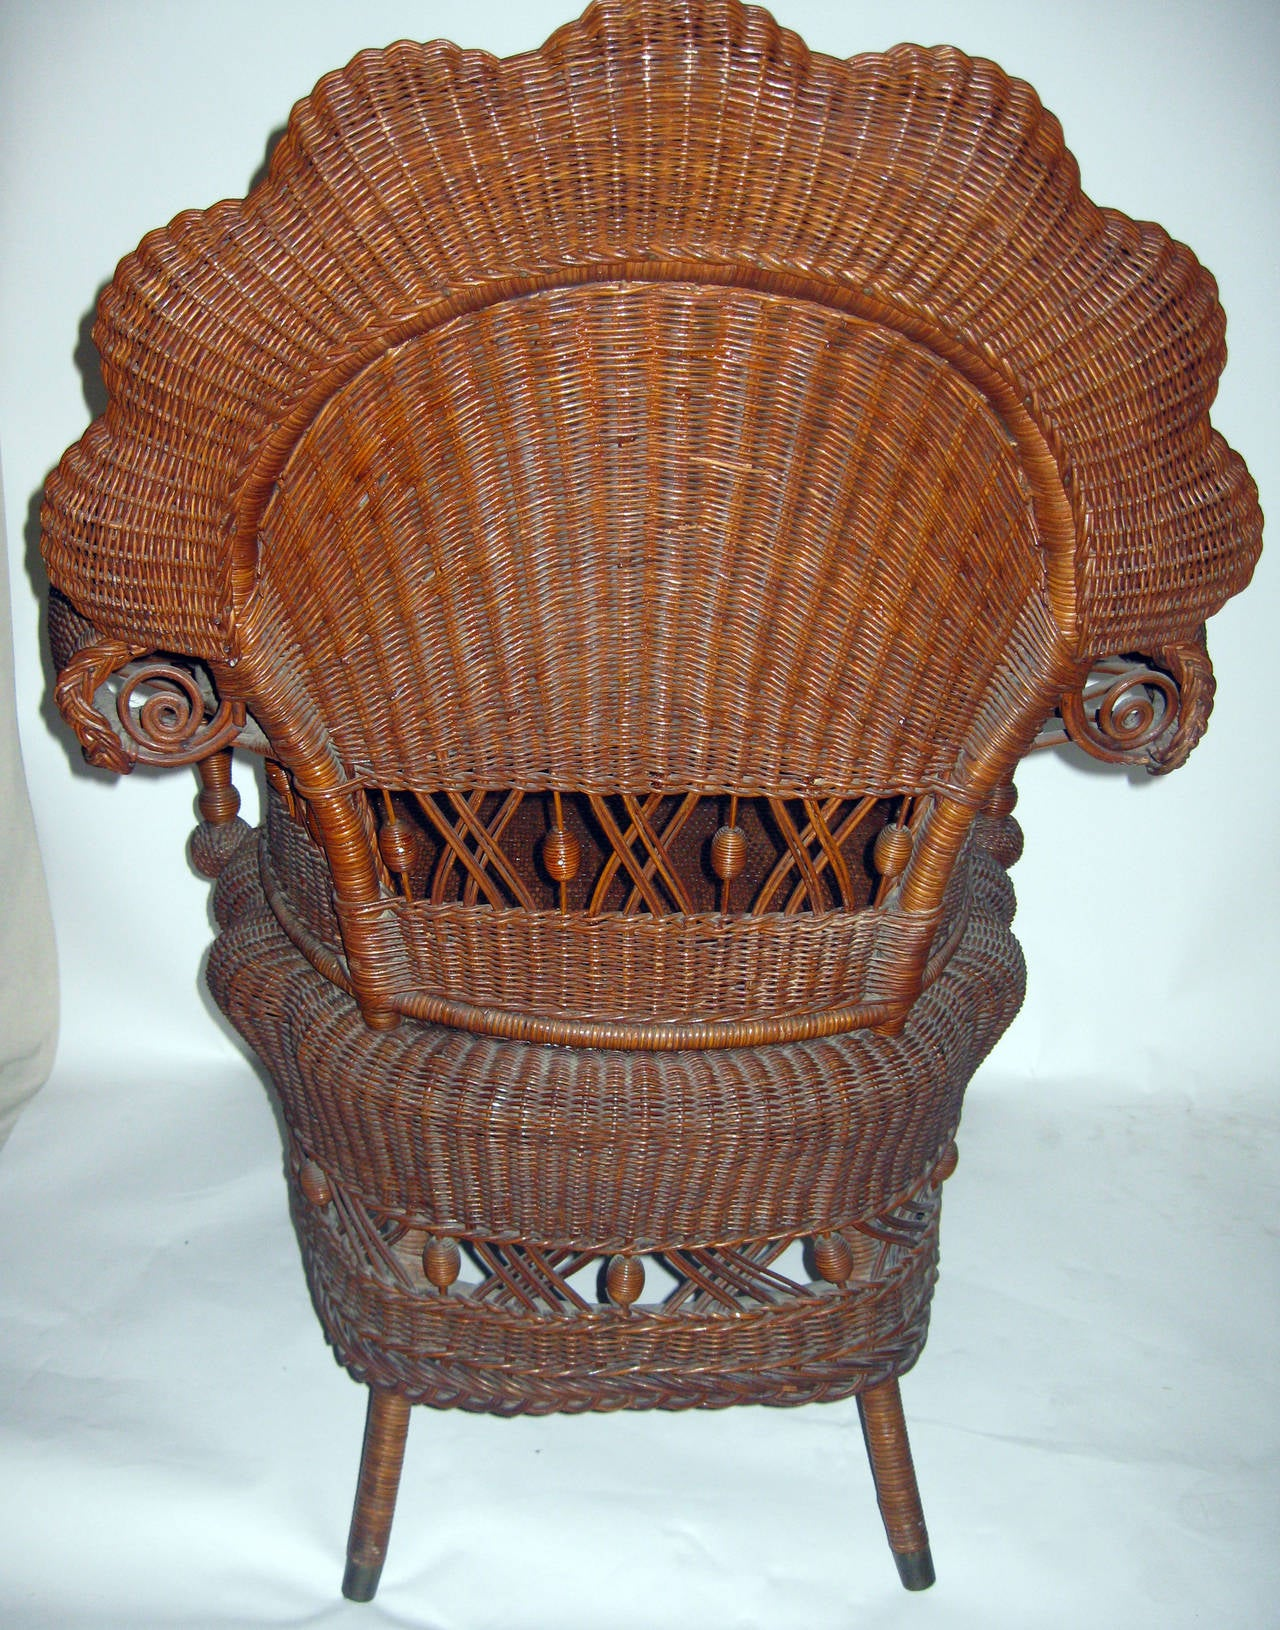 Late 19th Century 19th Century American Wicker Heywood Brothers Armchair